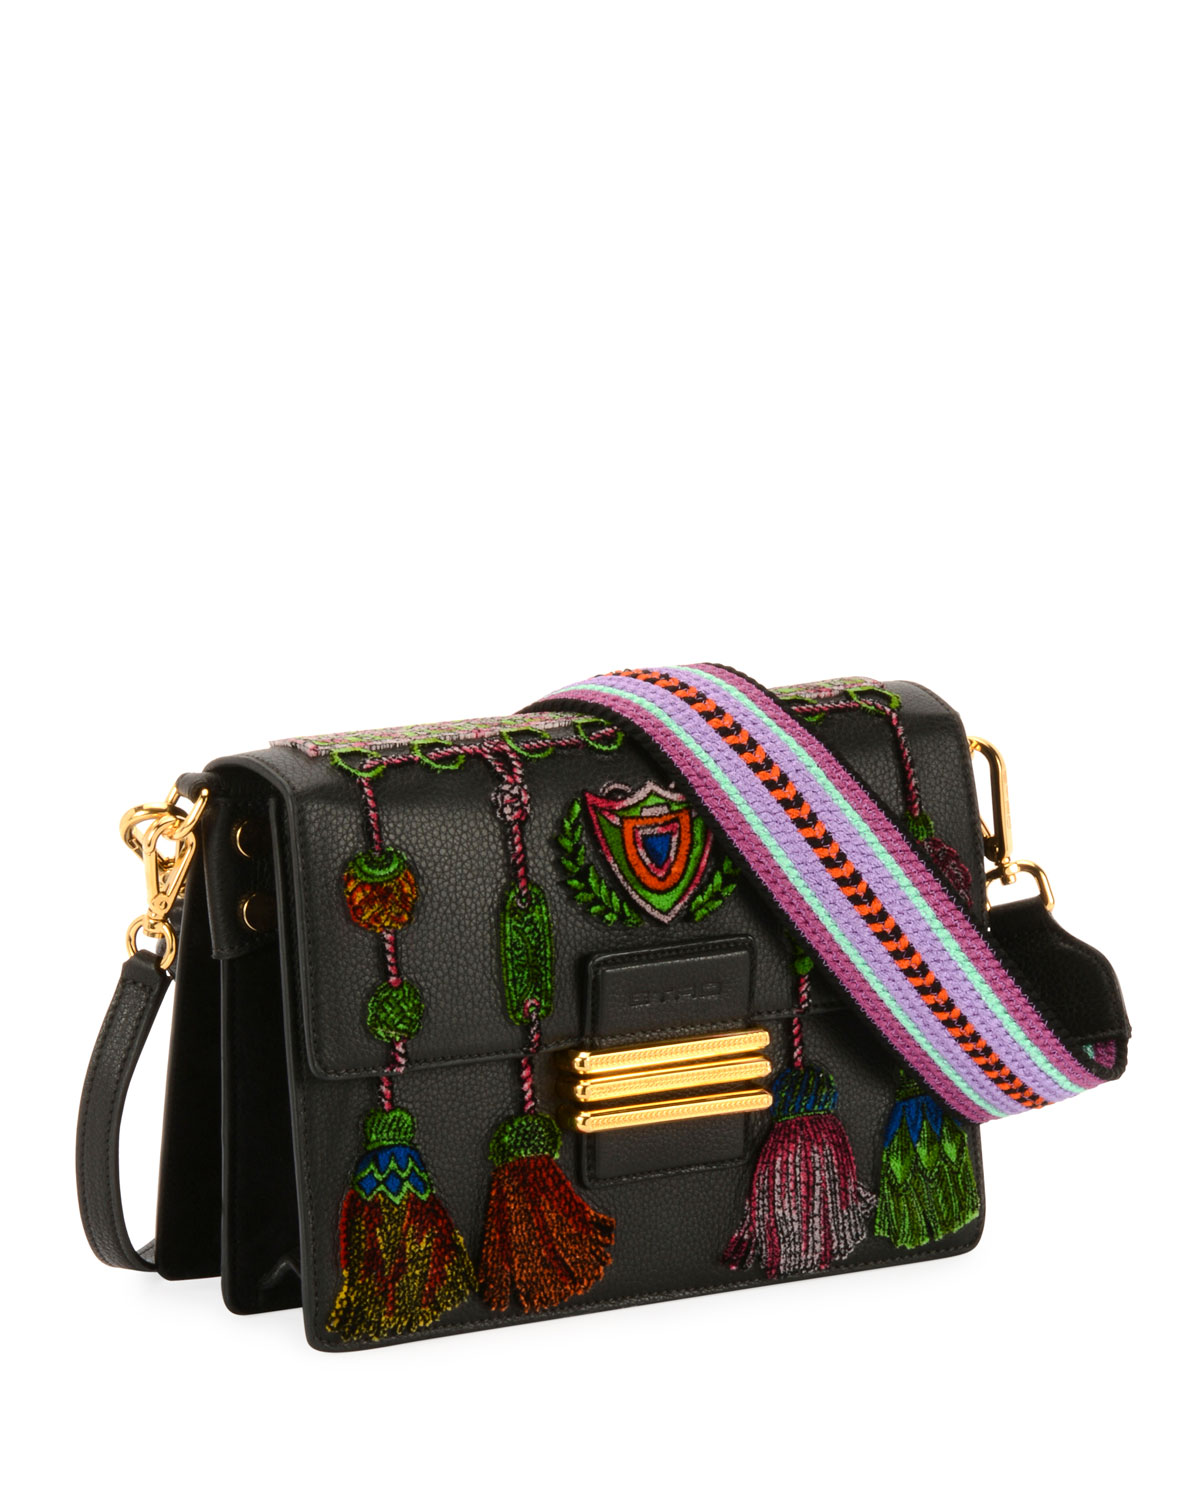 B Tracolla Rainbow Soft Shoulder Bag